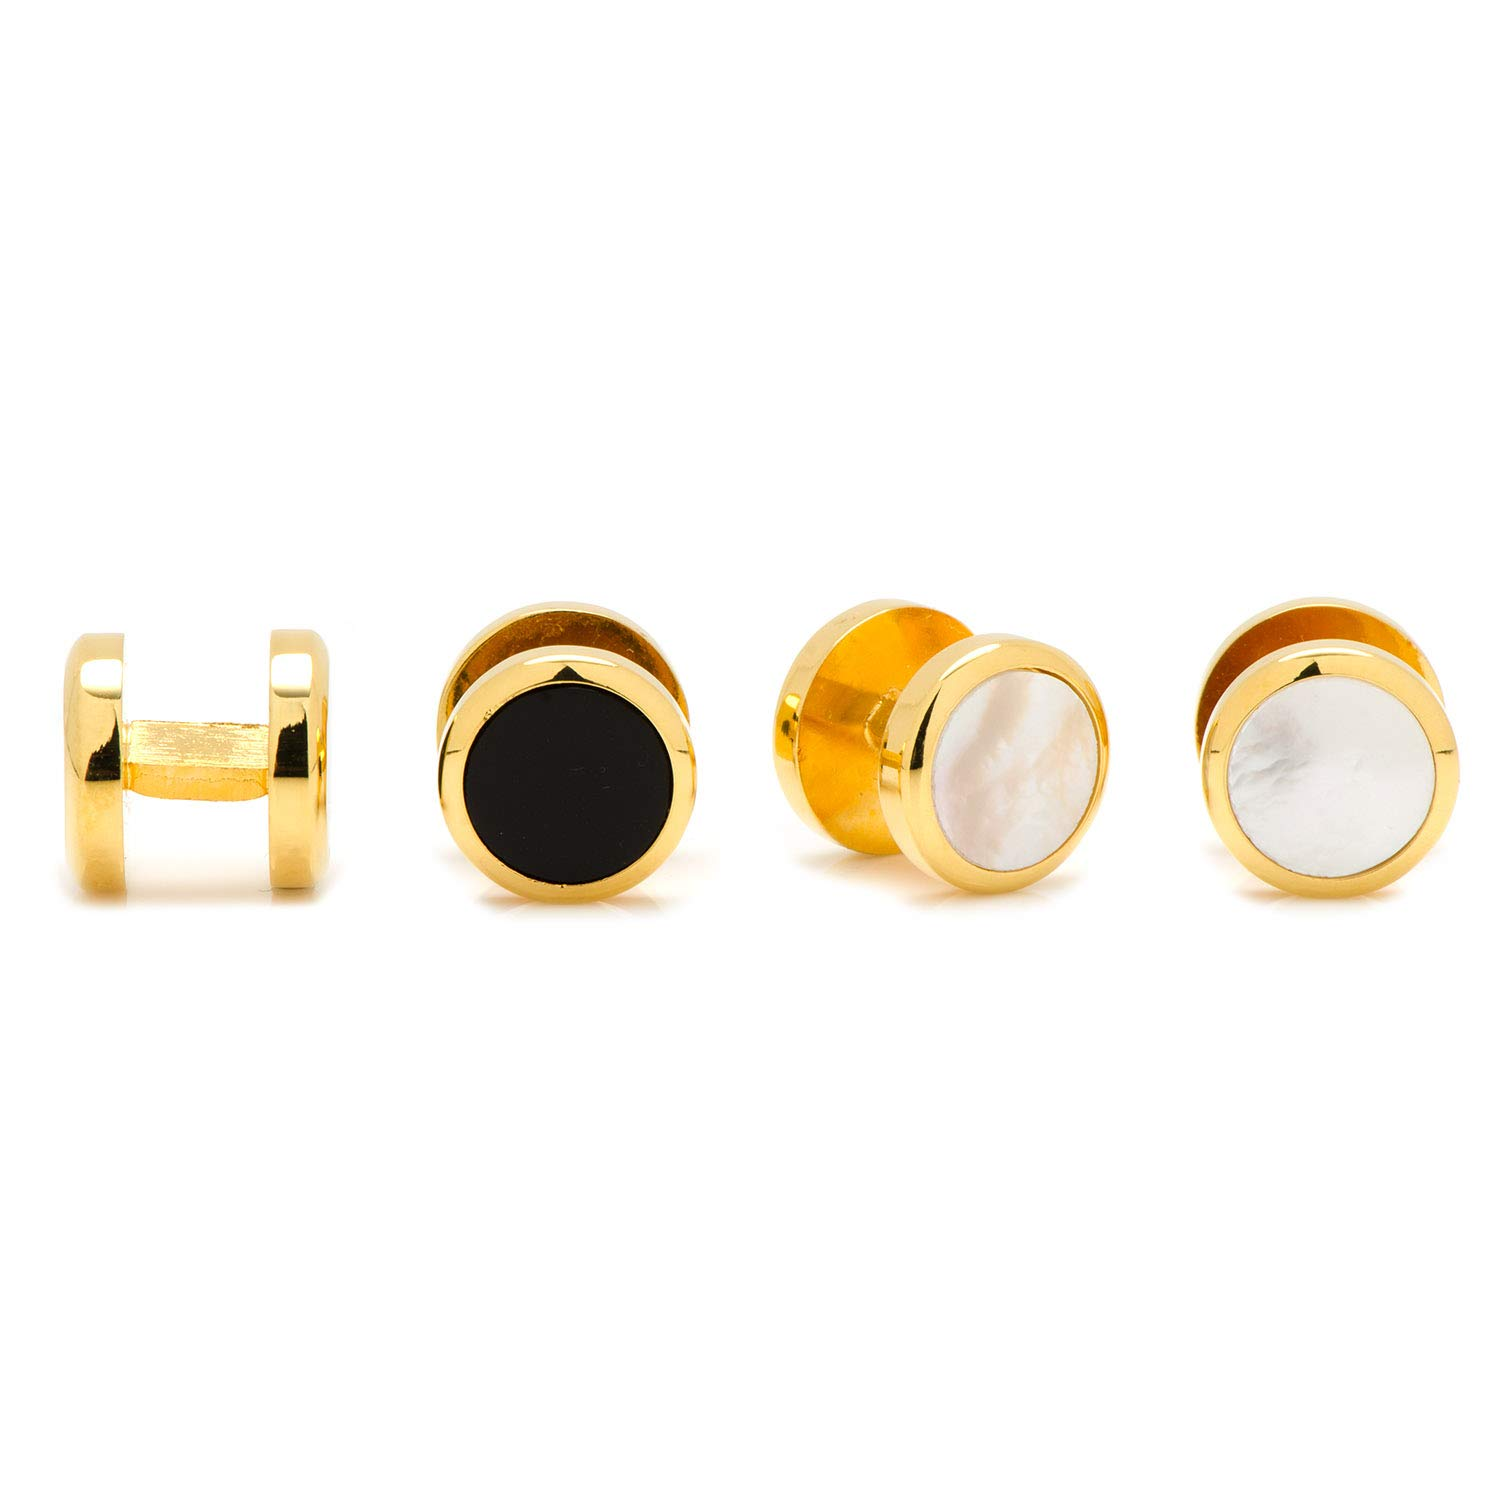 Ox and Bull Trading Co. Double Sided Gold Onyx and Mother of Pearl Round Studs BL-DSRND-GL-ST